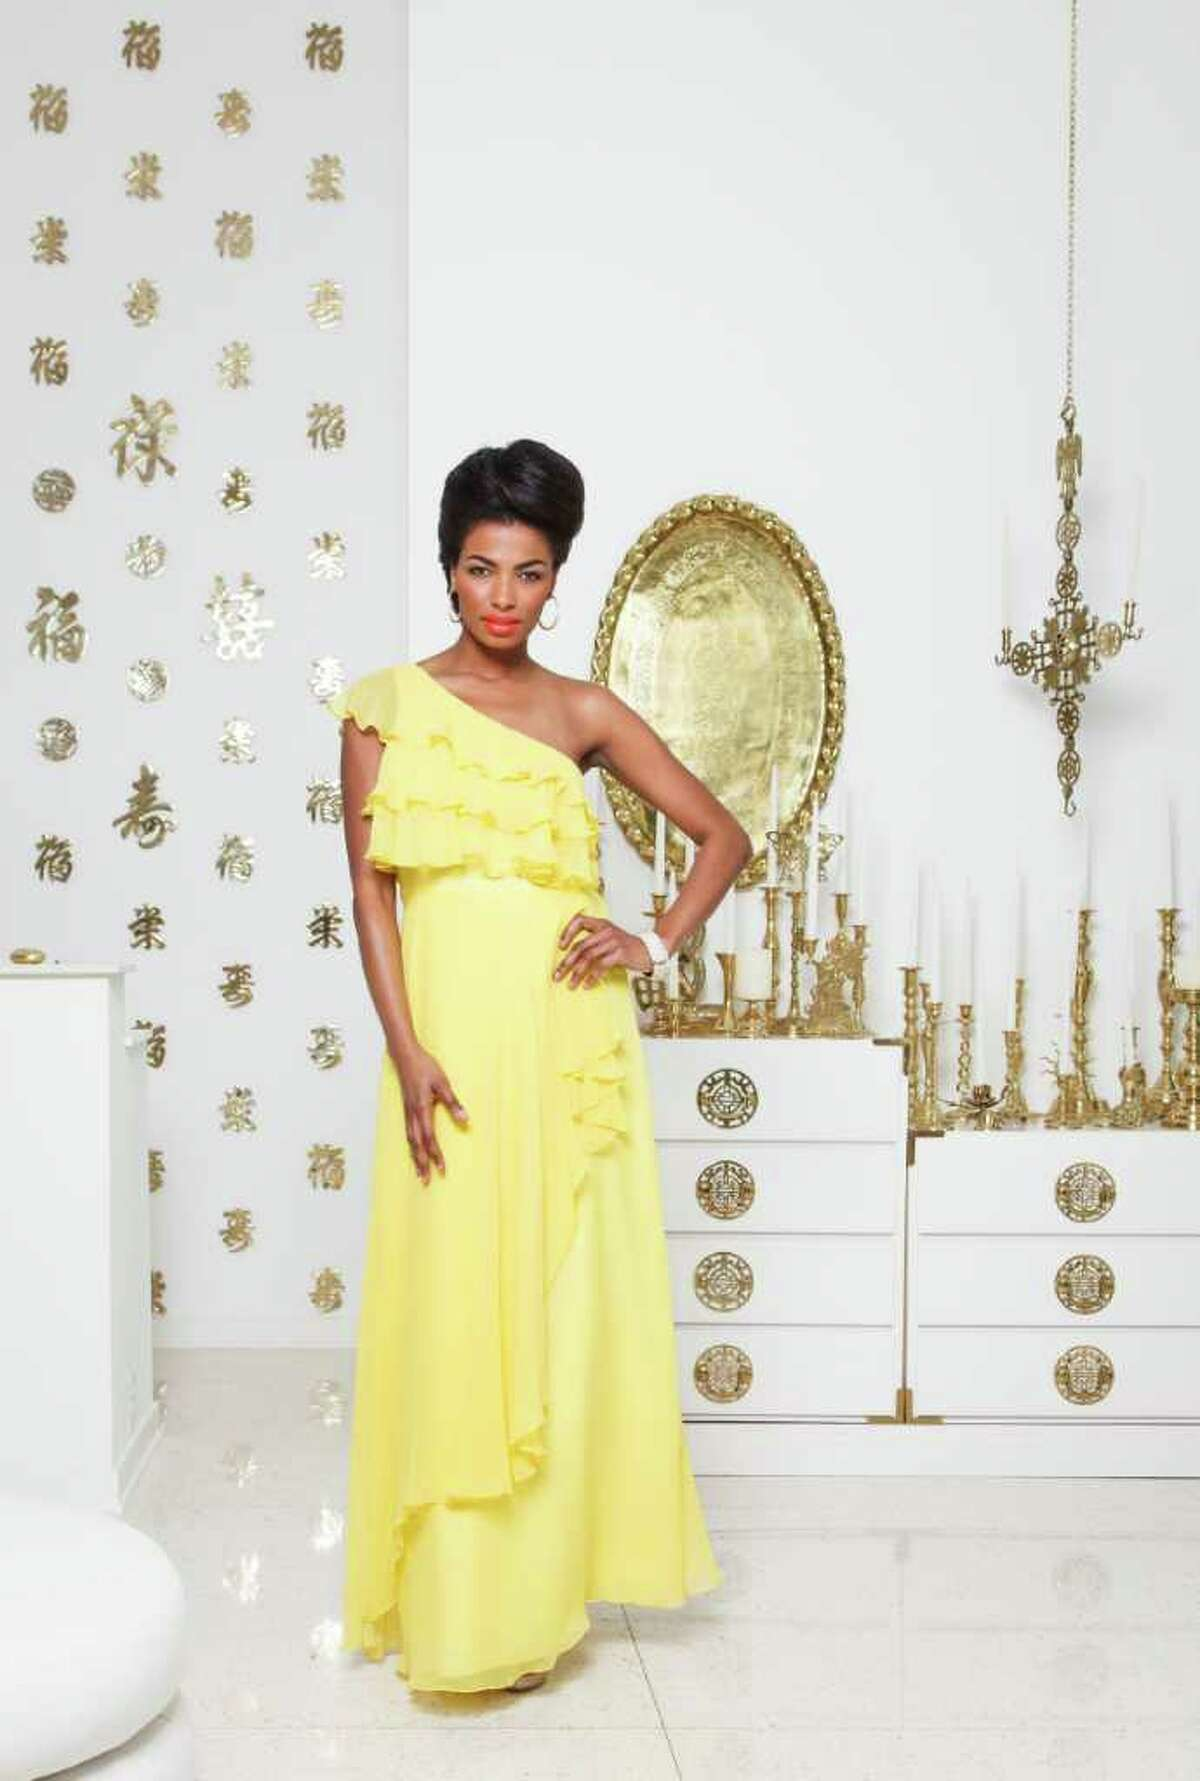 1. Clanay Wheeler of Neal Hamil Agency is wearing a yellow Jill Stuart dress, $398, with a Natasha rhinestone ring, $58, and earrings, $24; All from Dillard's. Her bracelet is Alexis Bittar, $295, from Neiman Marcus. Shoes are by Pelle Moda, $xx, Dillard's. Fashion styling by Wendy Norwood. Makeup by Tanya Robertson. Hair by Gayla Belay-Iyamu. Wednesday, Feb. 29, 2012, in Houston. ( Michael Paulsen / Houston Chronicle )